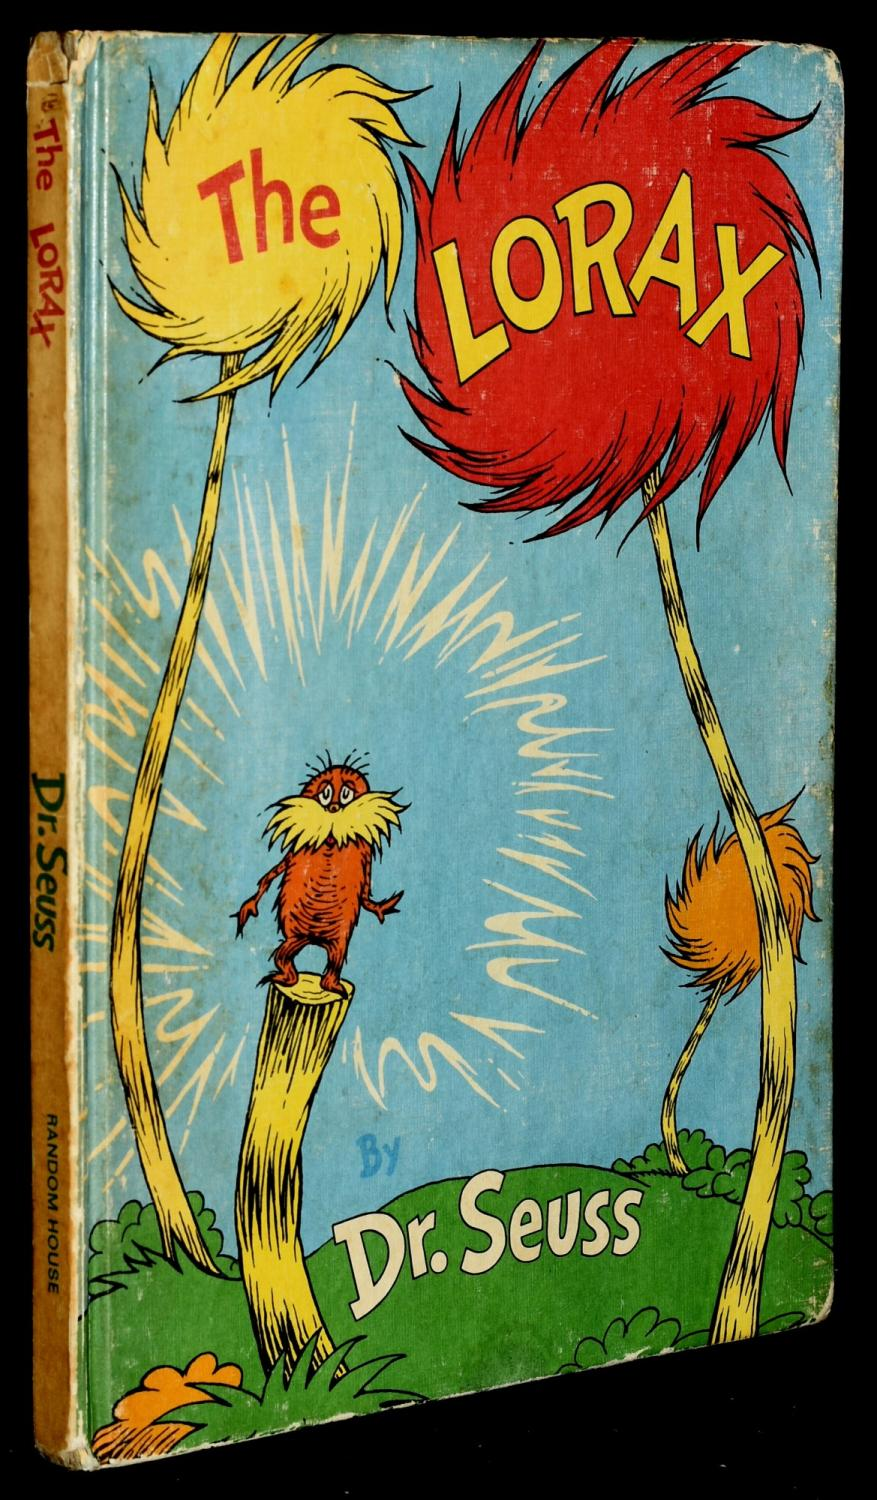 THE LORAX Dr. Seuss Hardcover